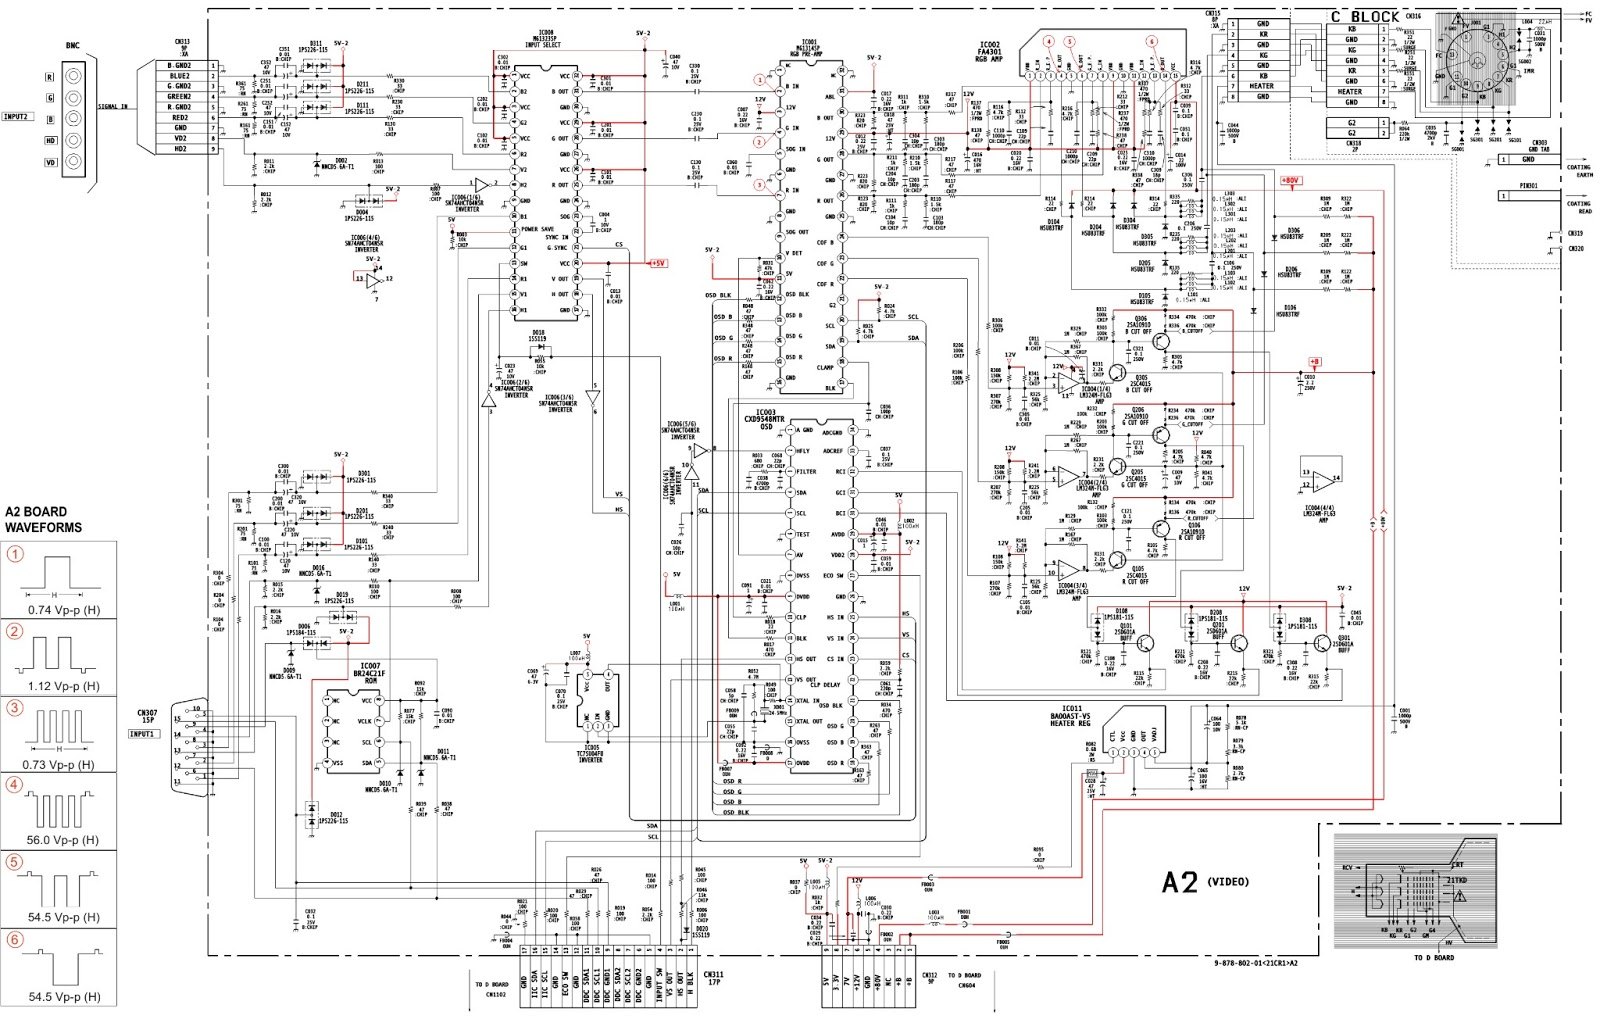 Ps3 Power Supply Wiring Diagram Schematics Diagrams Playstation 2 Sony Via Schematic Get Free Image About